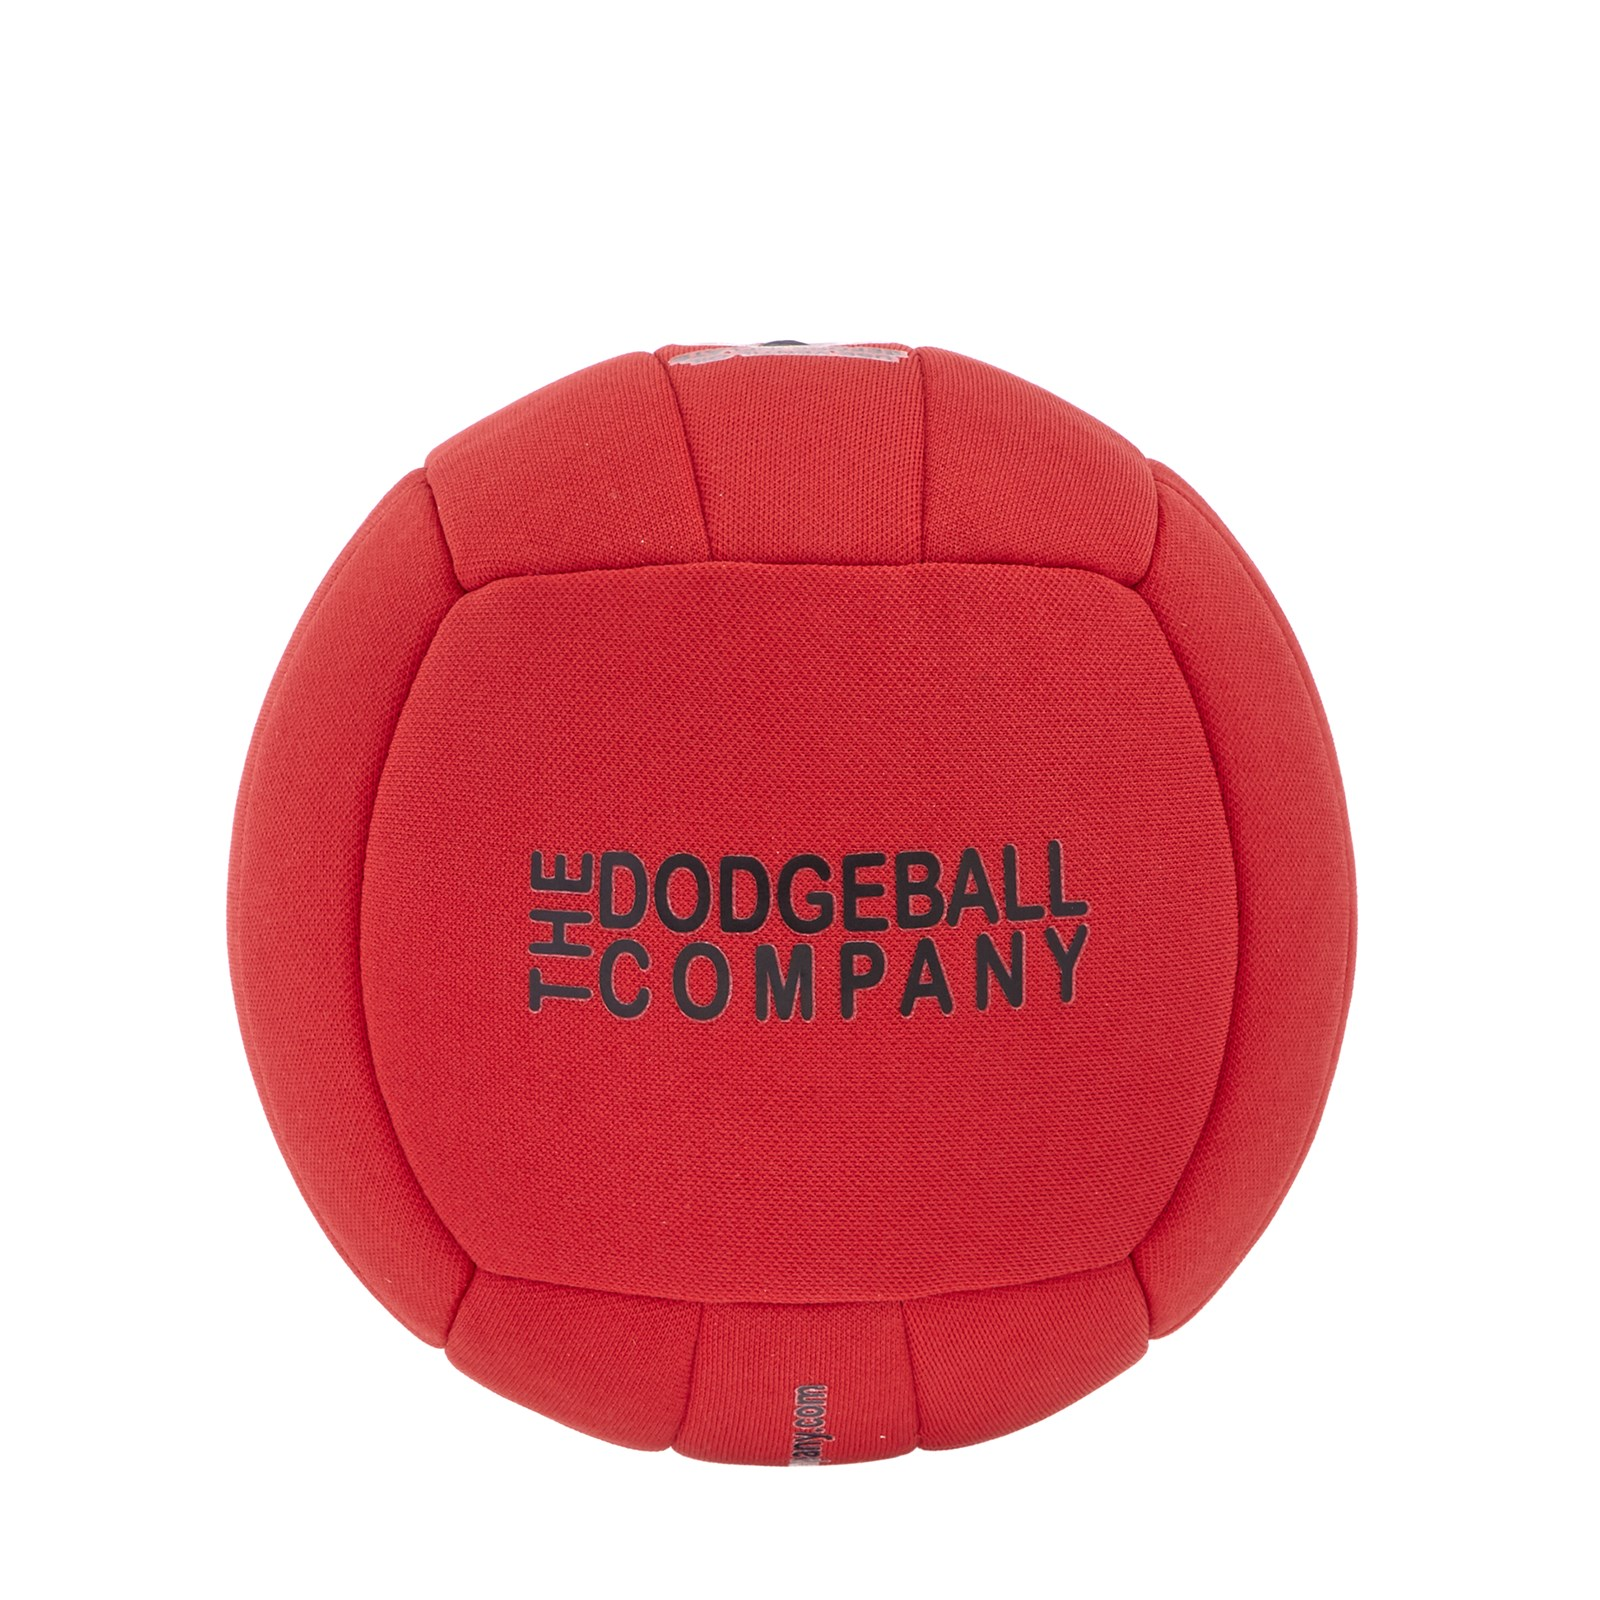 The Dodgeball Company Dodgeball 6in - Pack of 3 Pack of three